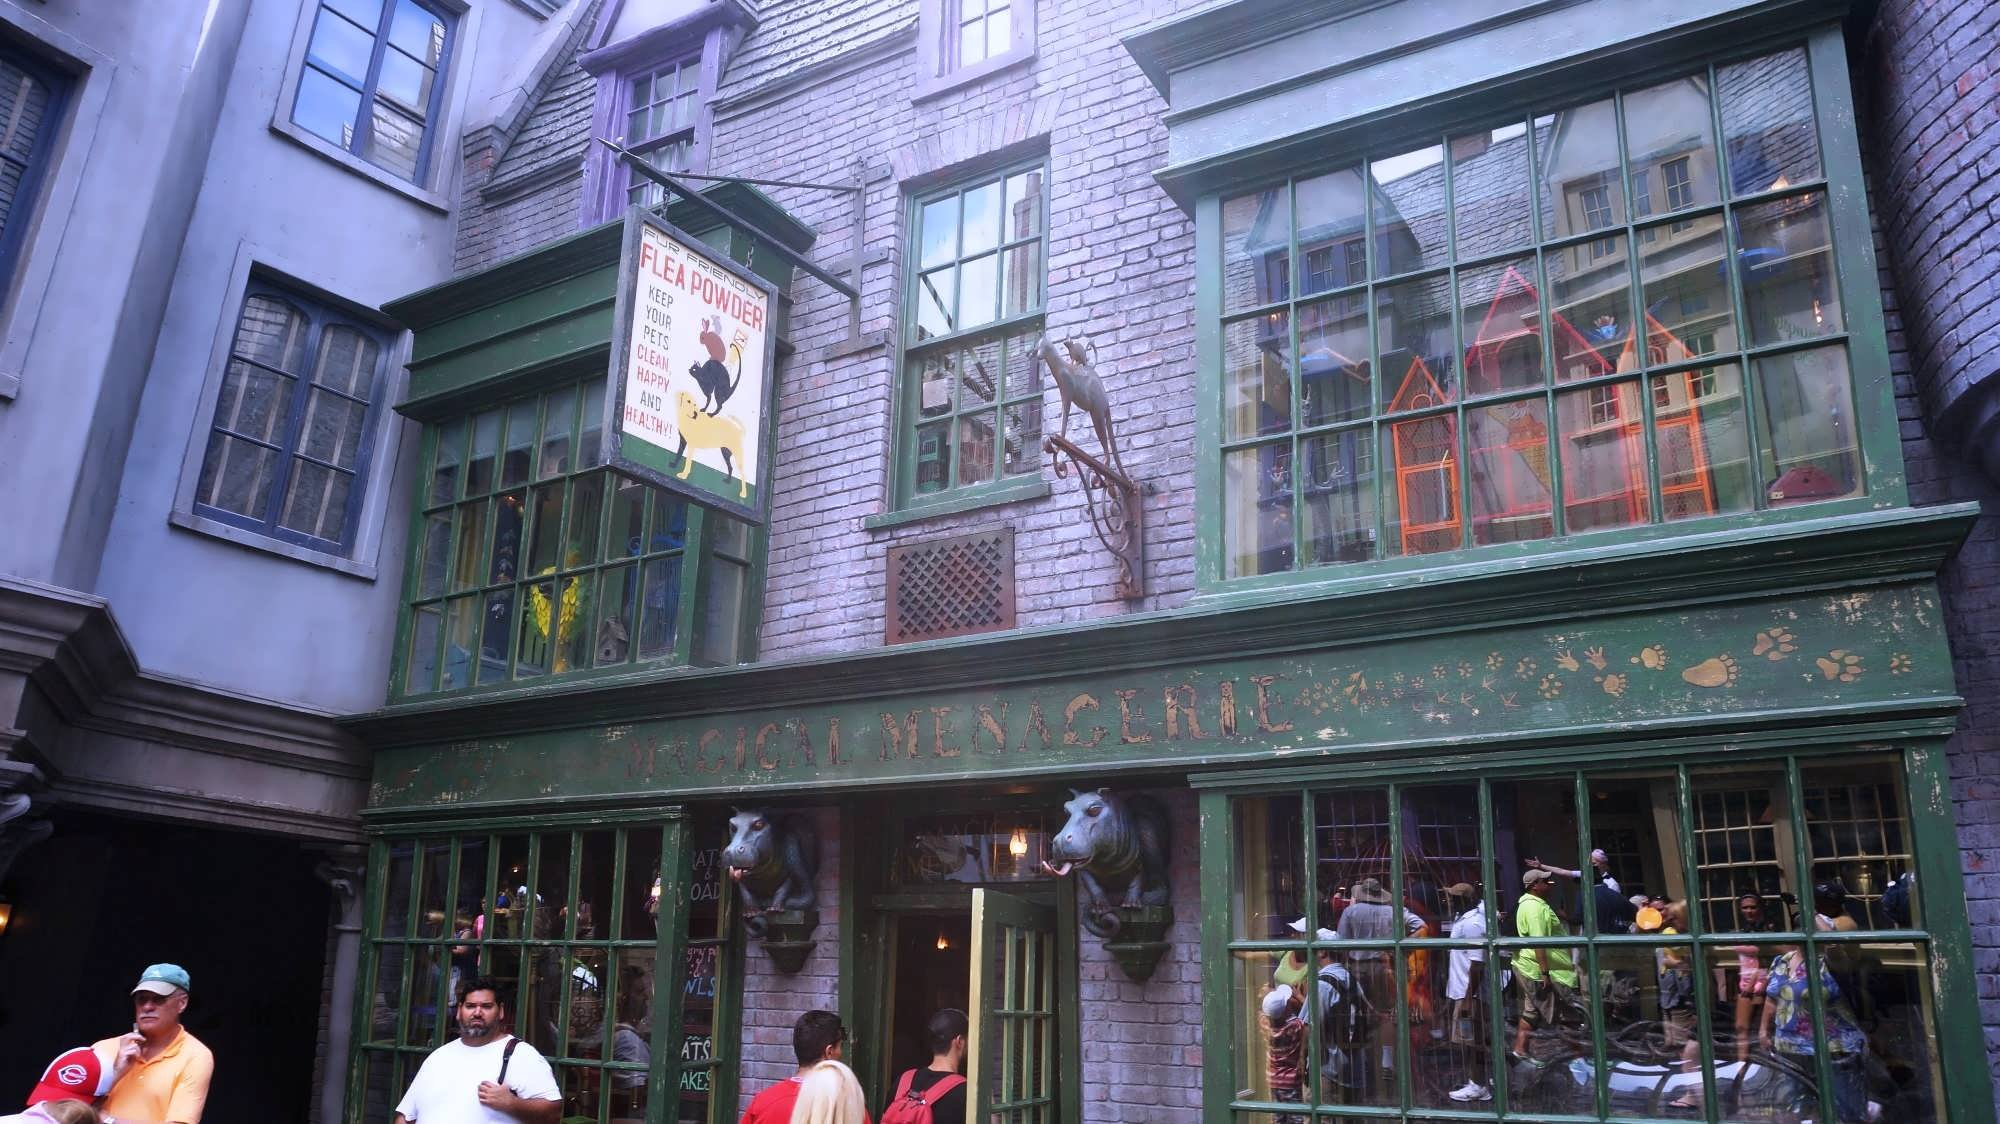 Magical Menagerie at the Wizarding World of Harry Potter - Diagon Alley.